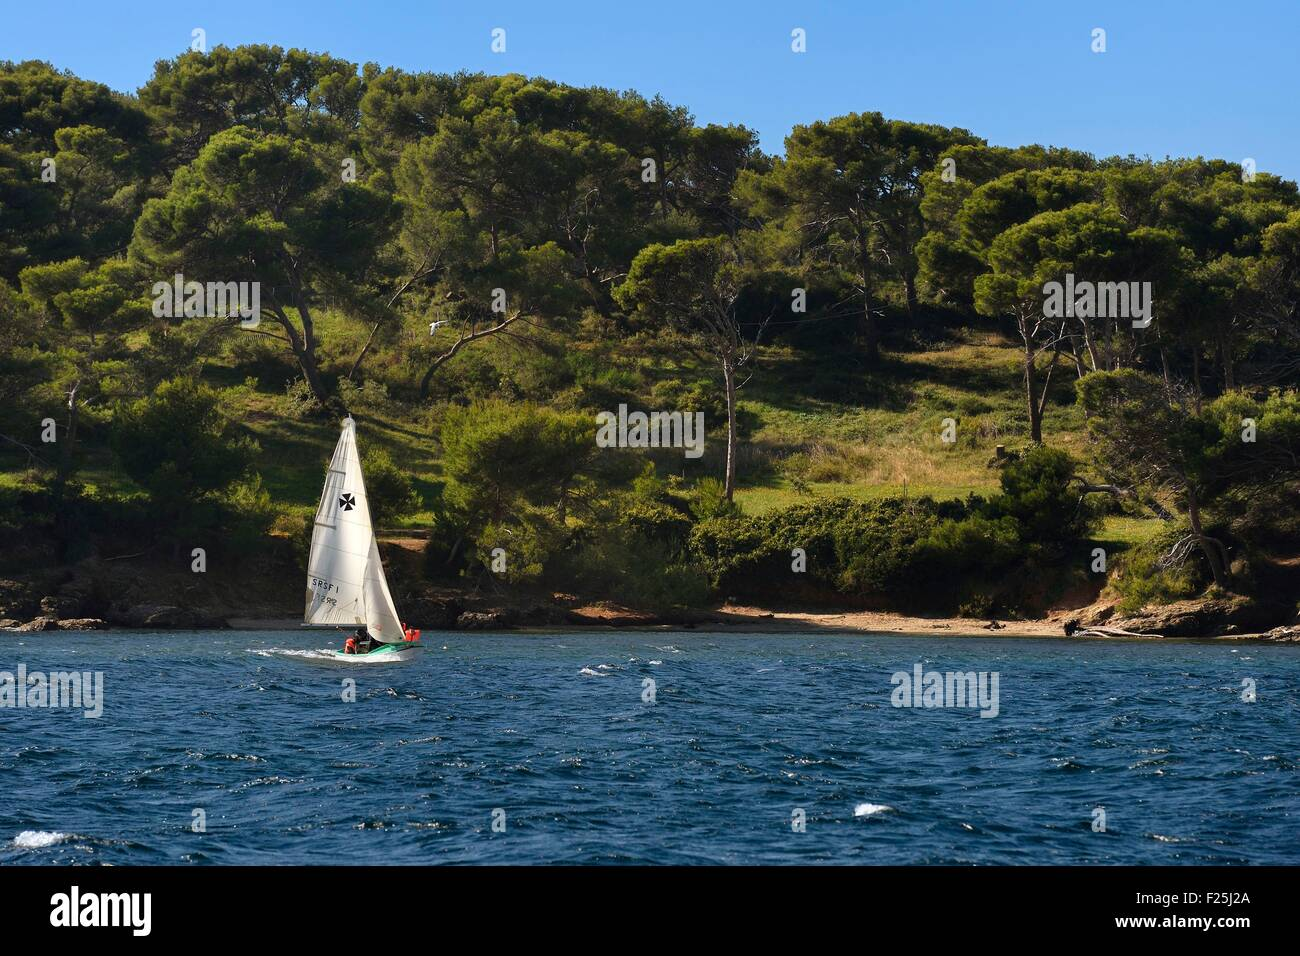 France, Var, Ile des Embiez, learning to sail on the cape of CanoubiΘ - Stock Image